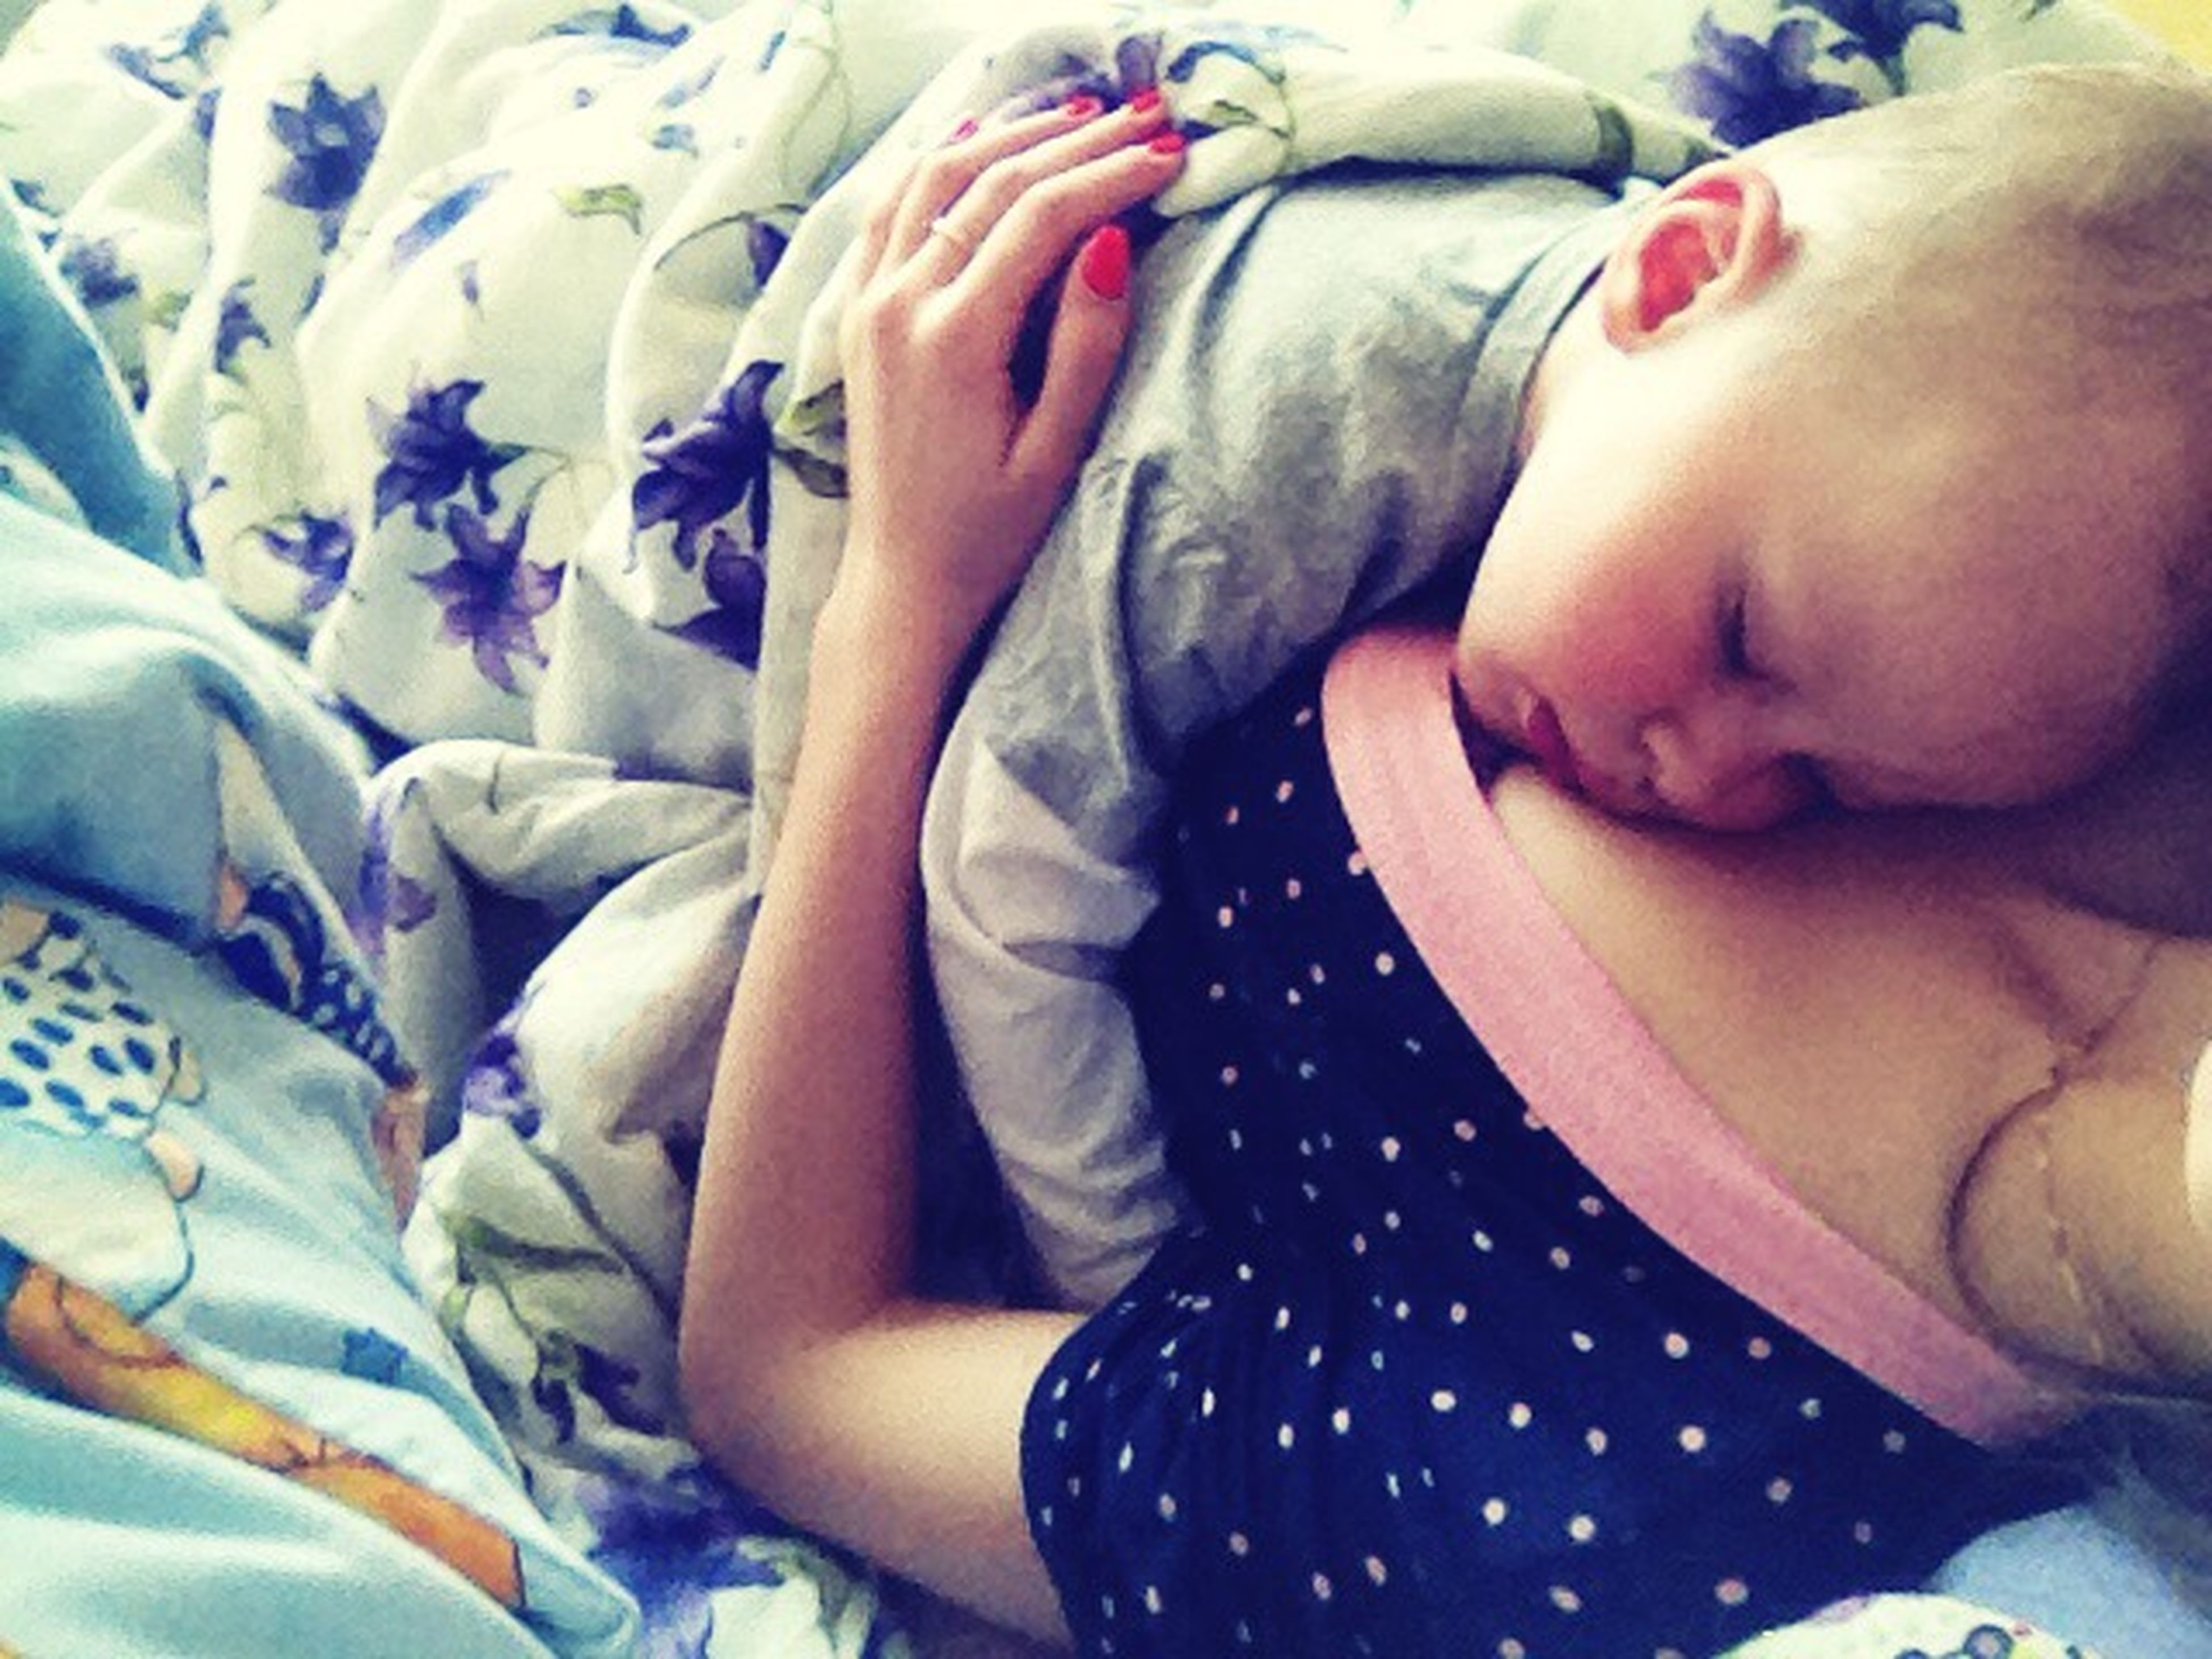 bed, relaxation, indoors, sleeping, lifestyles, baby, lying down, innocence, childhood, leisure activity, resting, babyhood, lying on back, unknown gender, togetherness, bonding, toddler, person